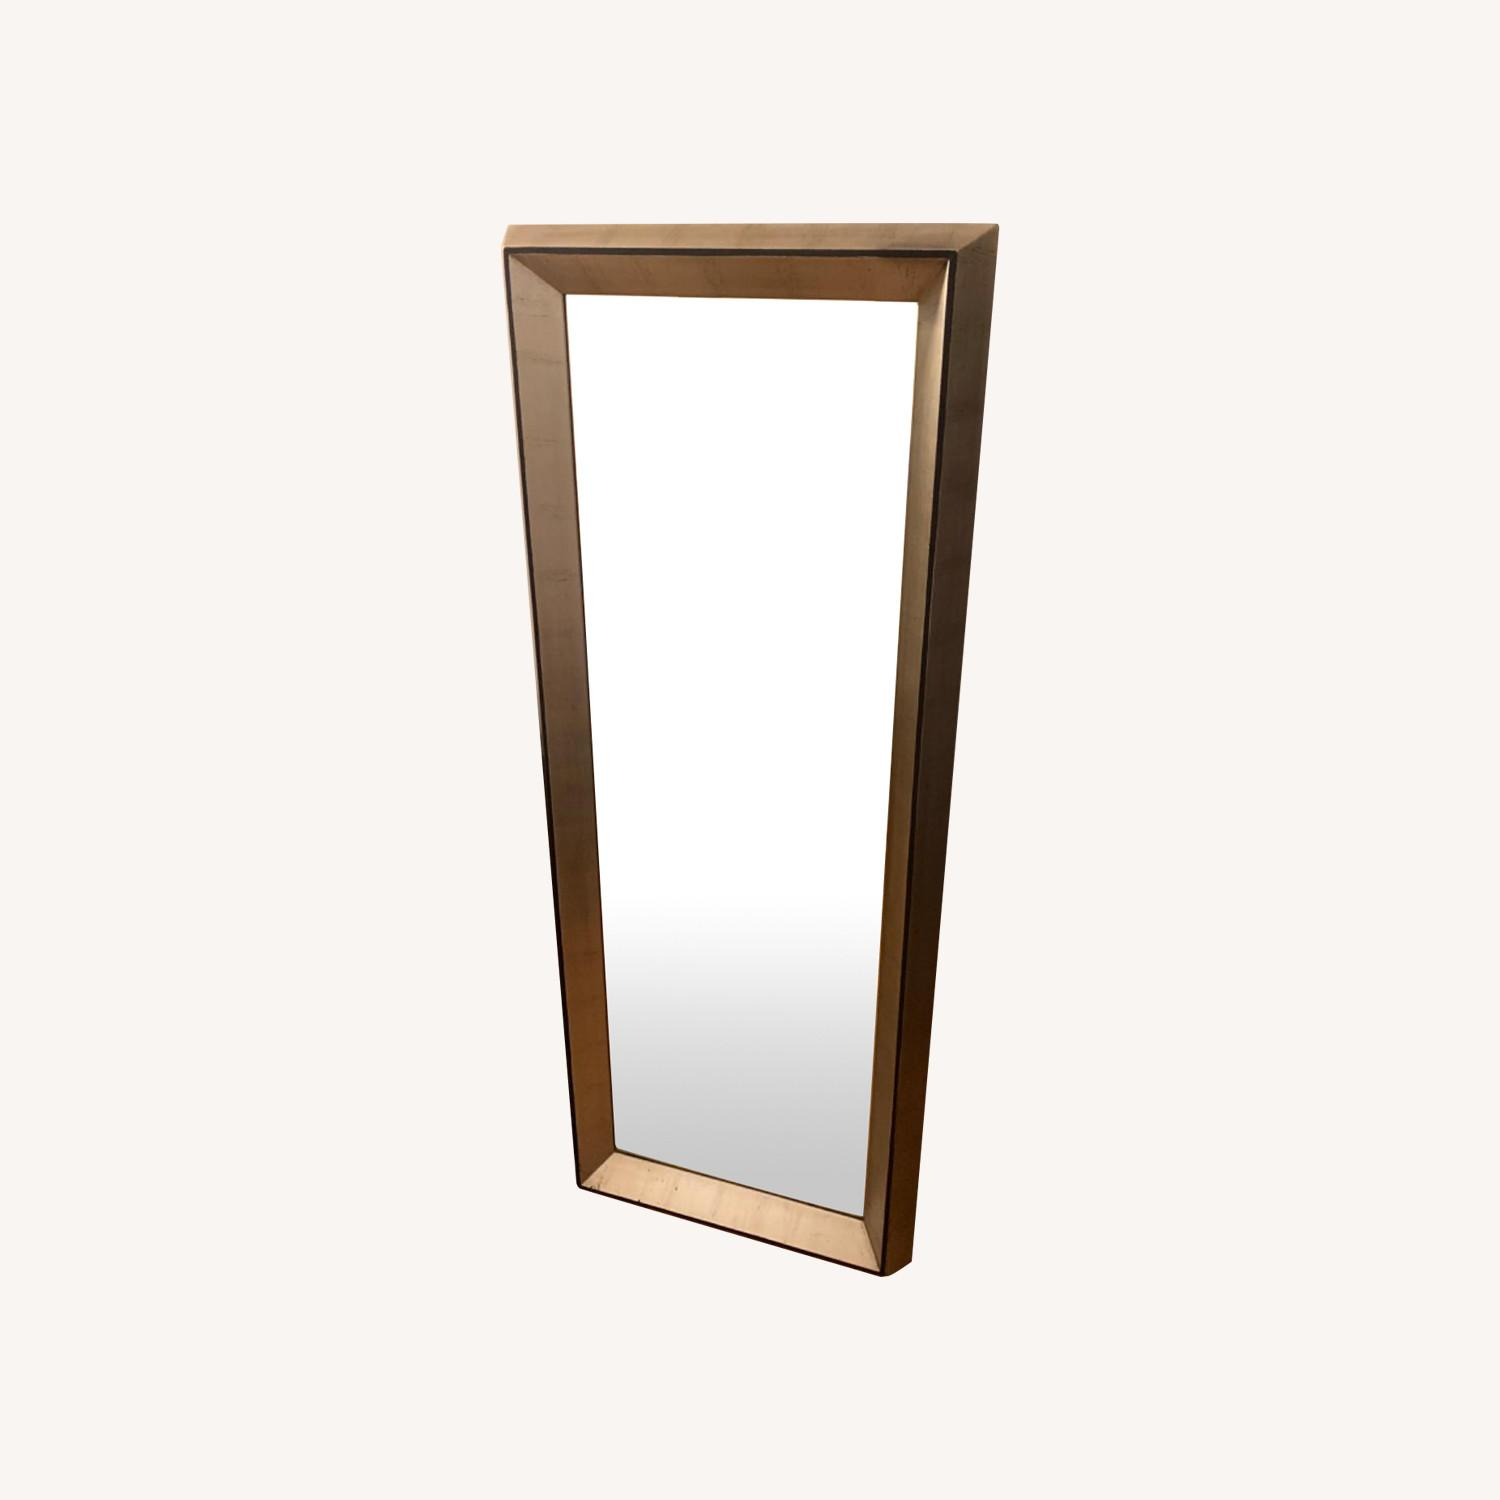 Wood Framed Floor Mirror - image-0